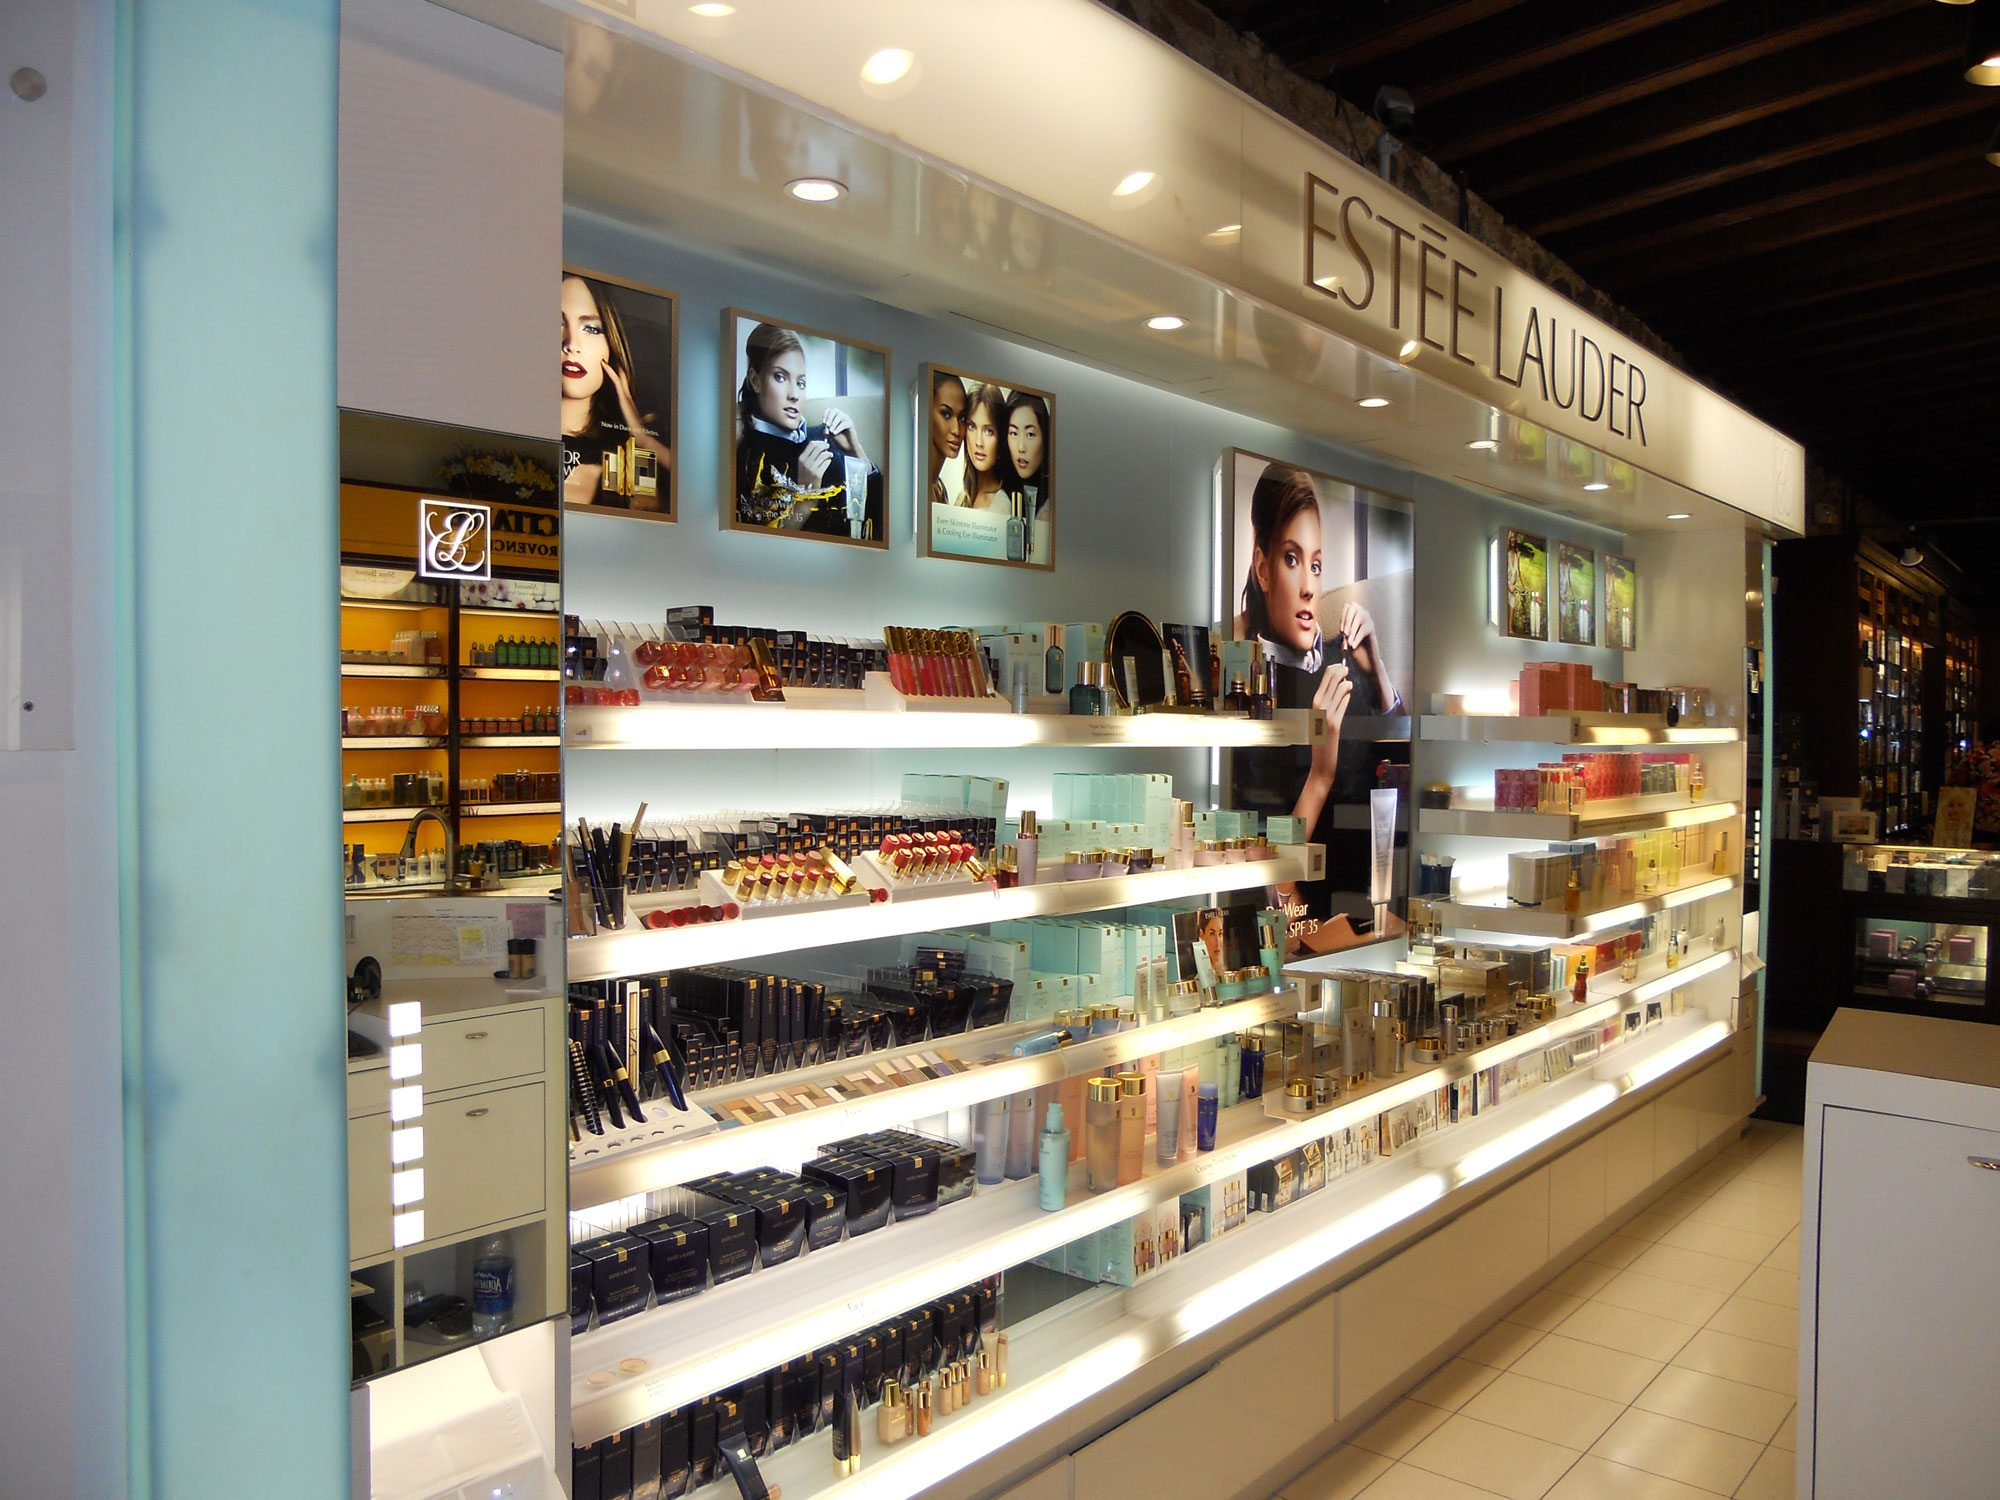 estee lauder counter